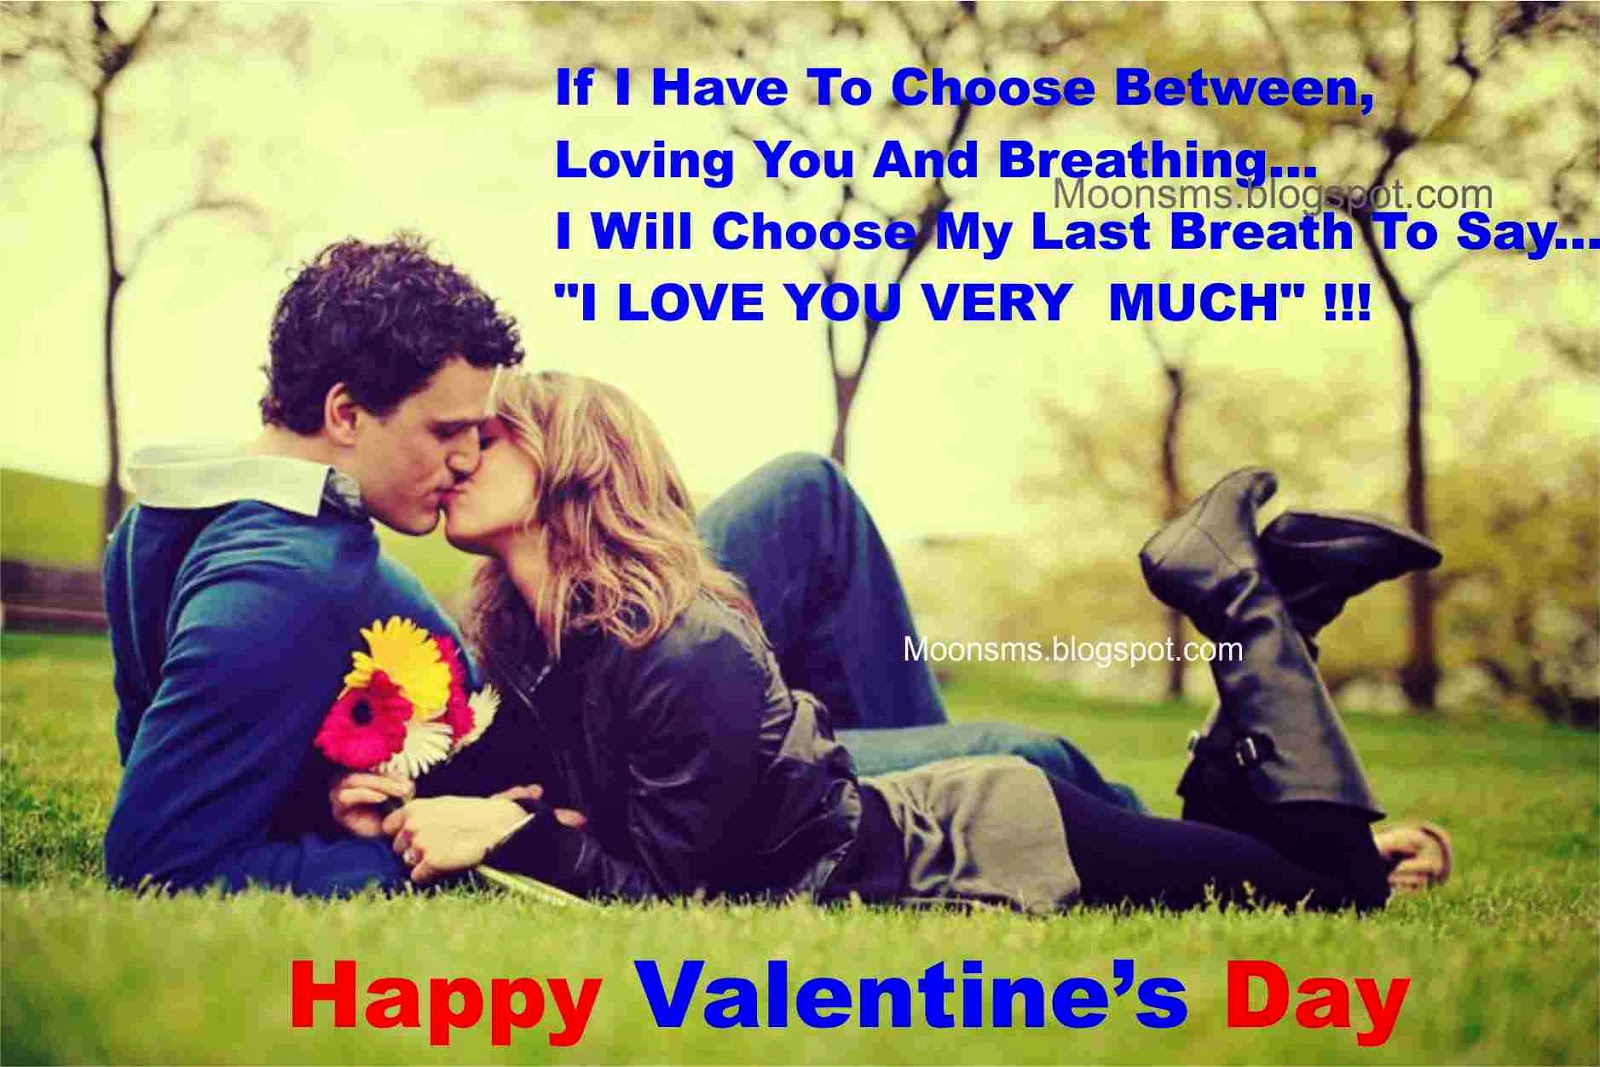 Valentines Day Quotes For Girlfriend Valentines Day Love Quotes With Image 2016